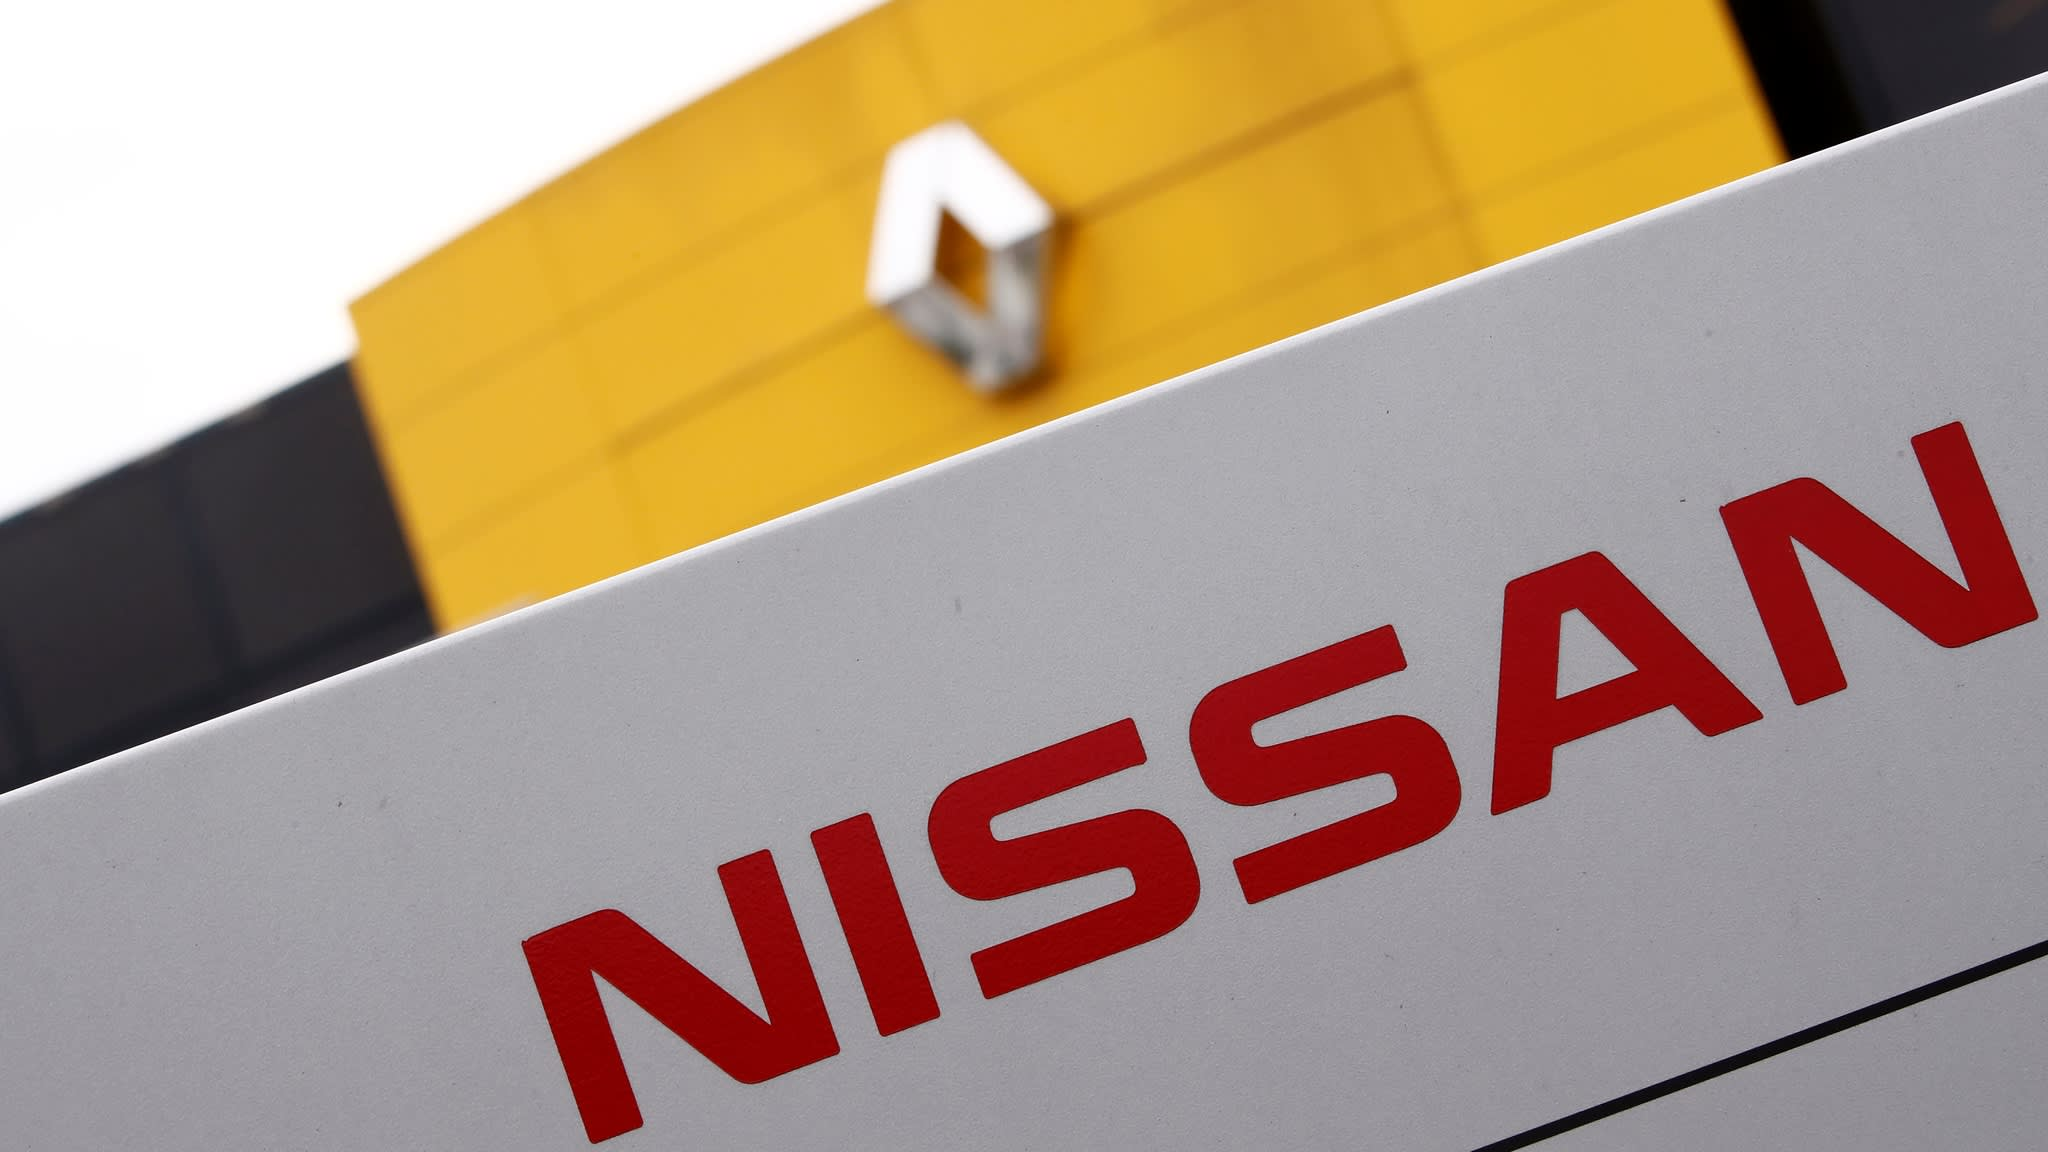 Renault-Nissan -- Why not a proper merger? - Nikkei Asian Review